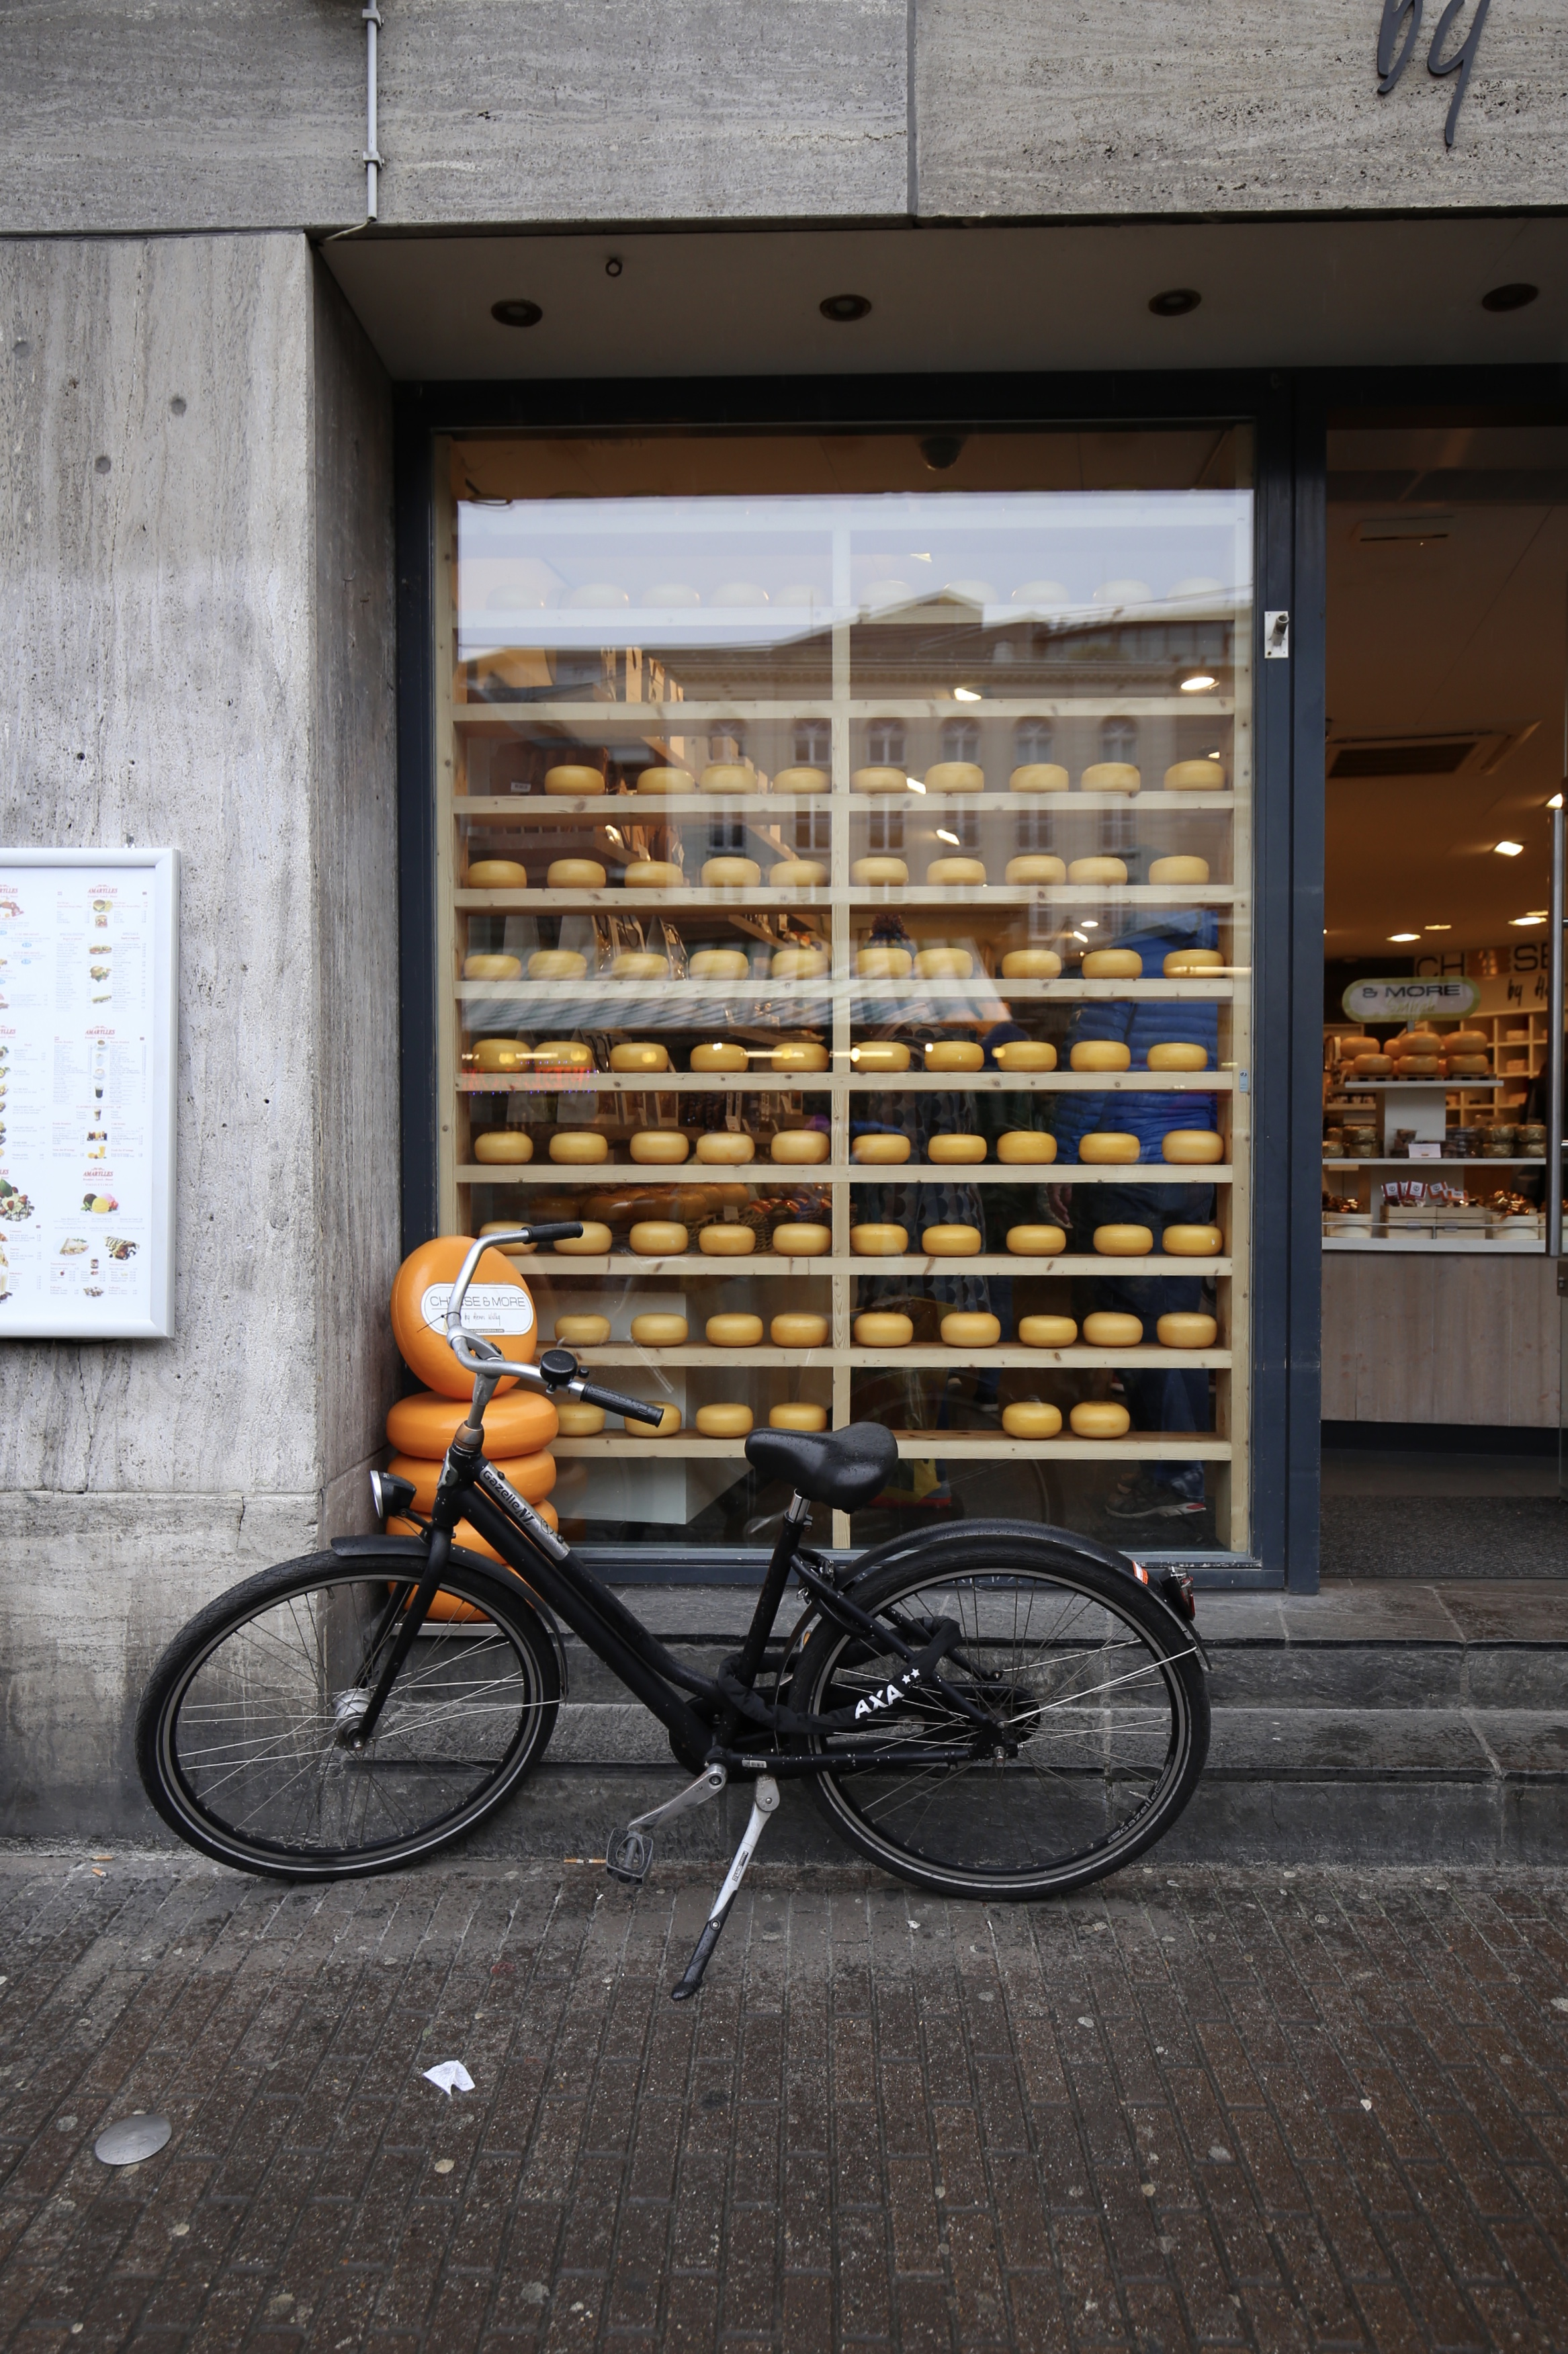 Rounds of cheese in a shop window, with a bike outside, Amsterdam.